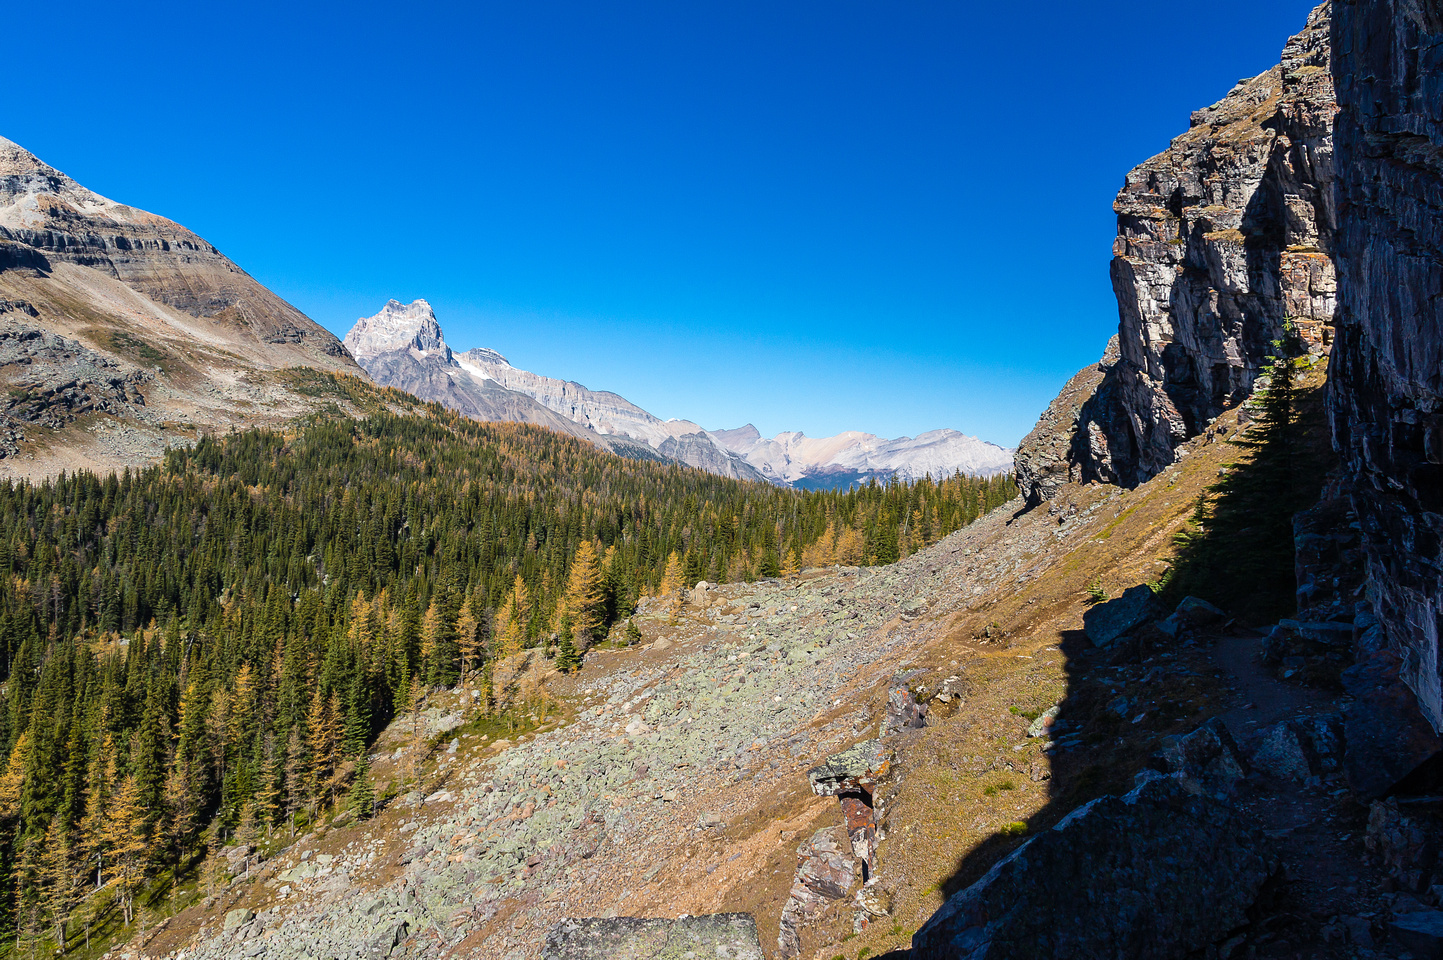 Looking along a neat section of trail that bypassed cliffs on the right, towards McArthur Pass and Cathedral Mountain.